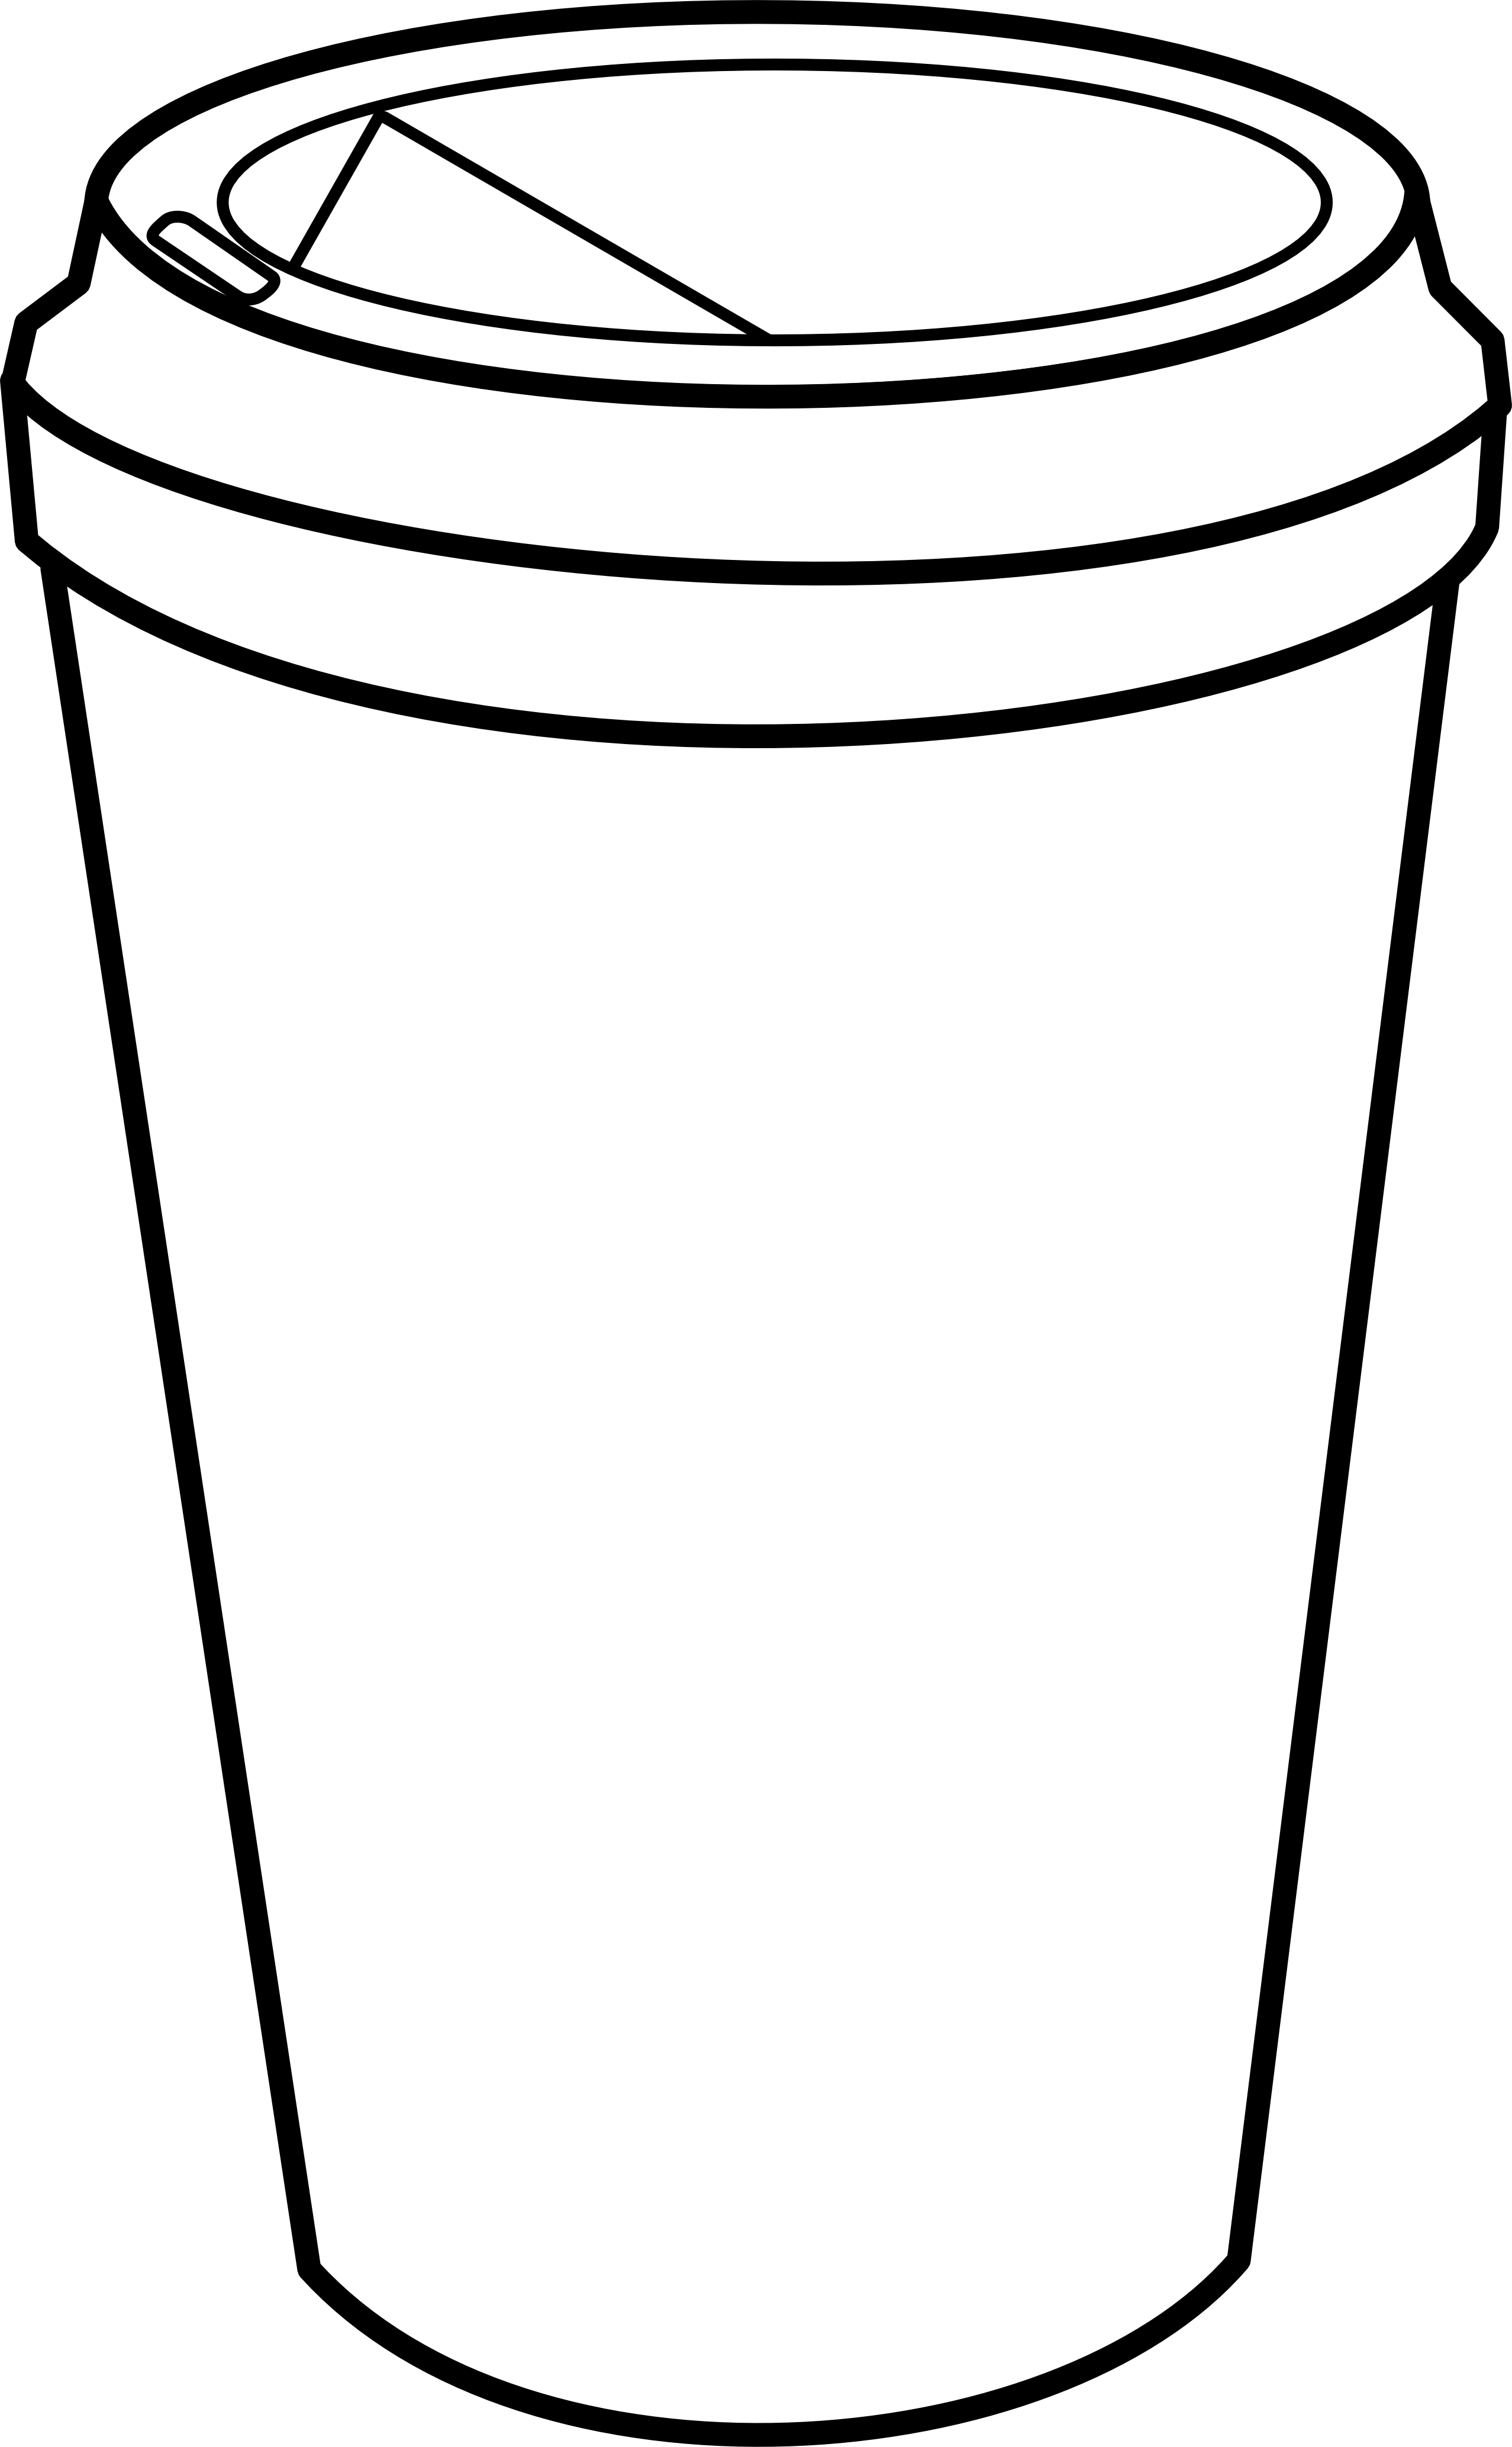 Free starbucks cliparts download. Clipart coffee line art